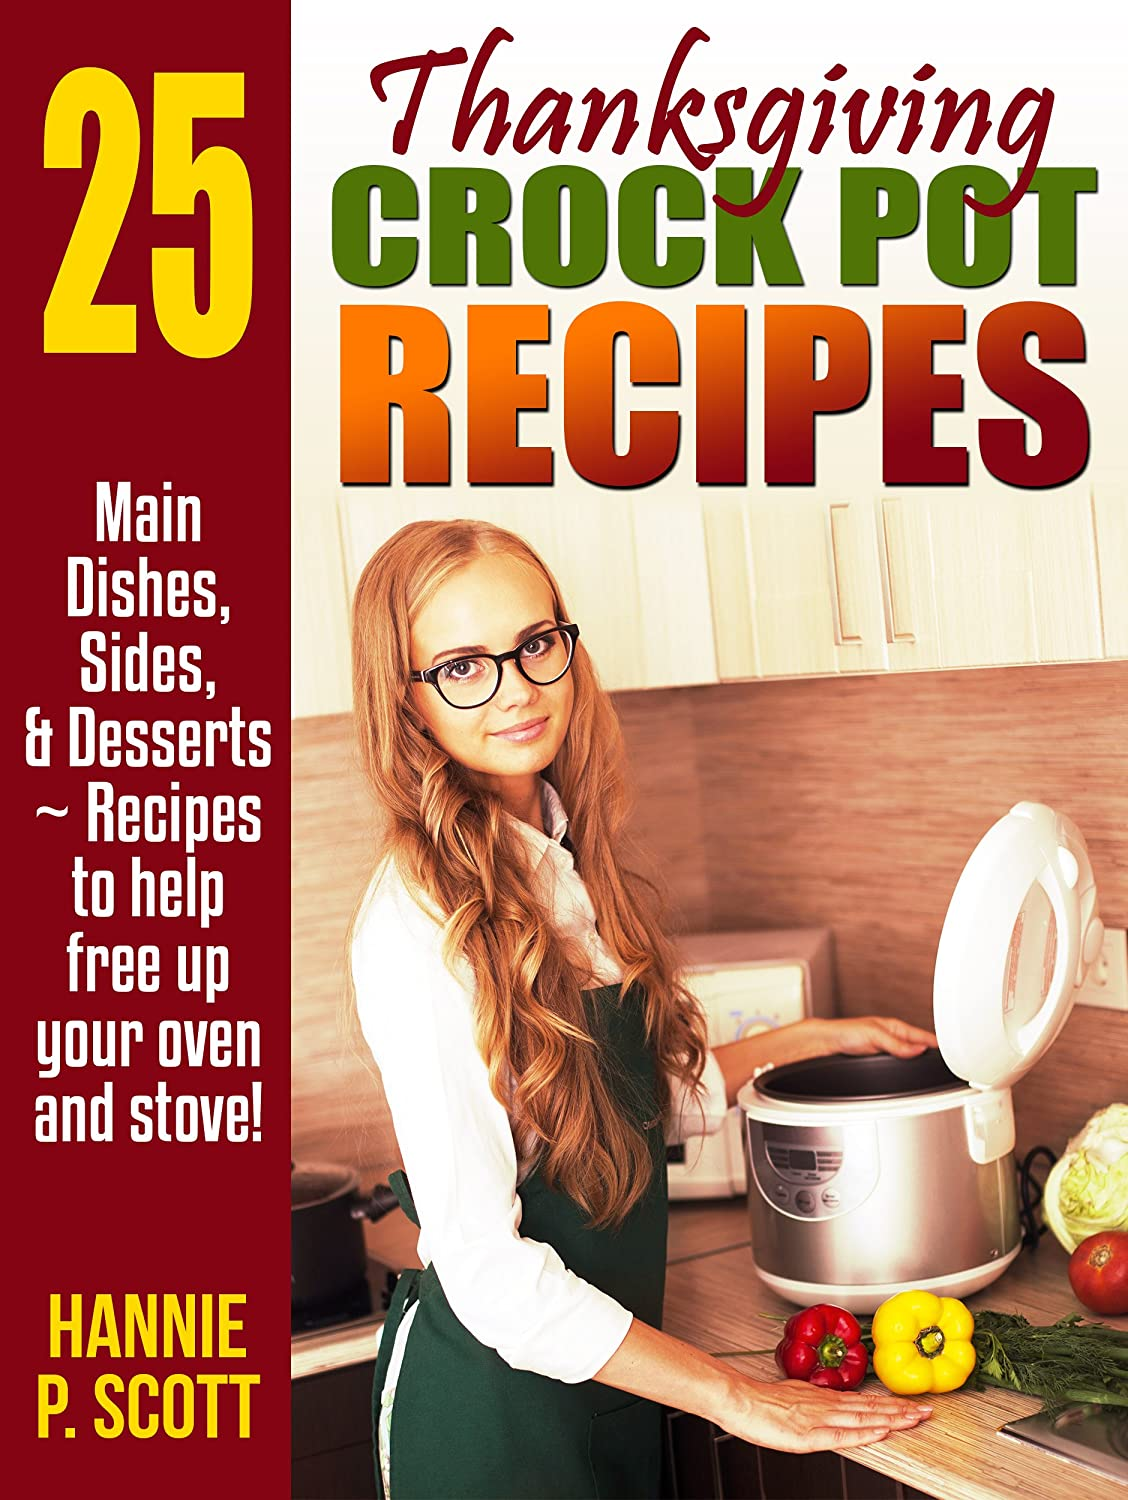 http://www.amazon.com/Thanksgiving-Crock-Pot-Recipes-Simple-ebook/dp/B00OJRFUAA/ref=as_sl_pc_ss_til?tag=lettfromahome-20&linkCode=w01&linkId=2RLBS56HYUK5SC6E&creativeASIN=B00OJRFUAA